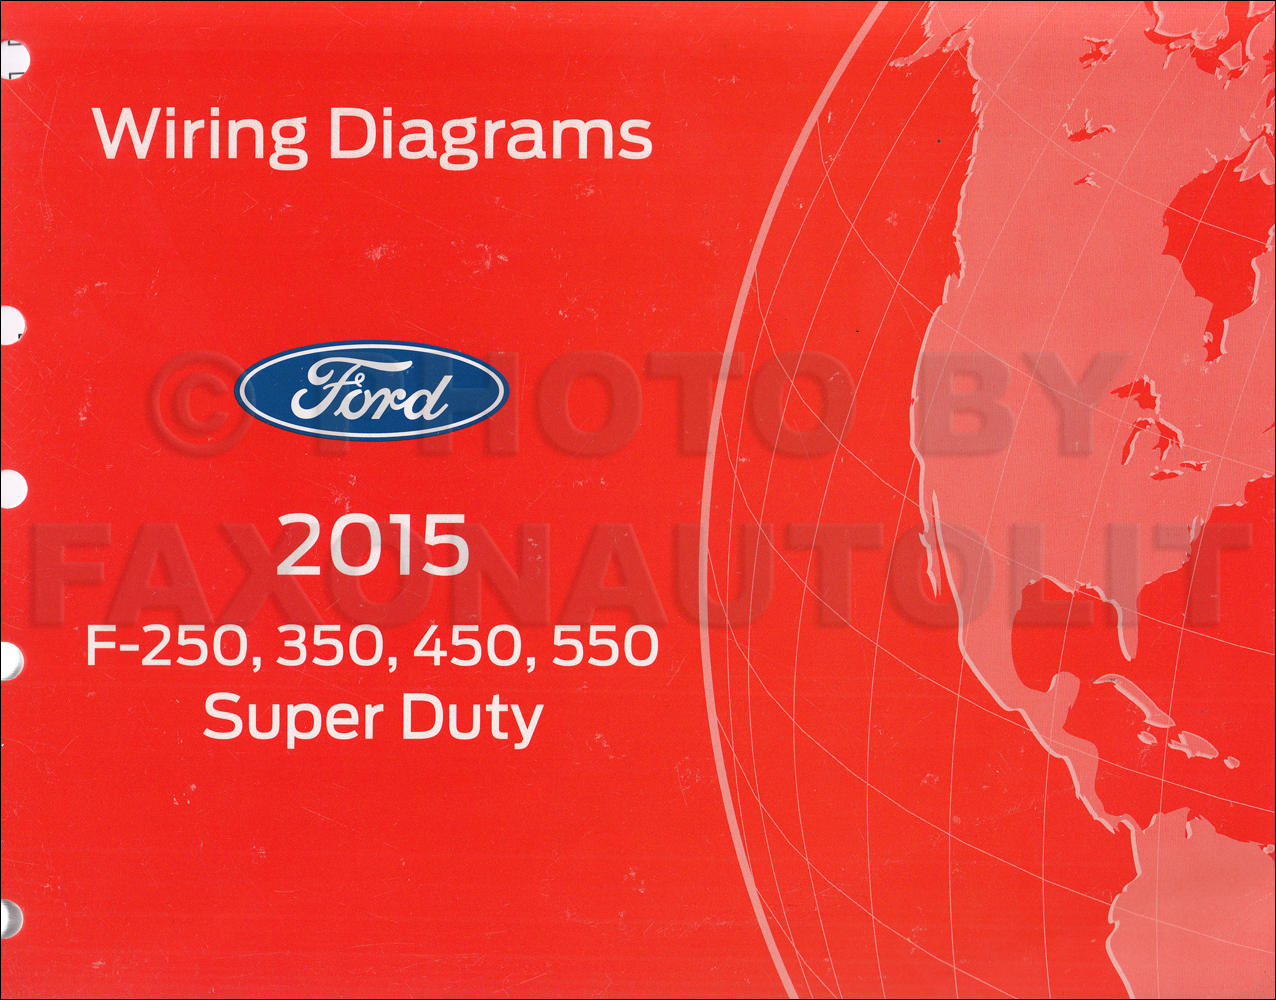 2015 Ford F250-F550 Super DutyTruck Wiring Diagram Manual Original